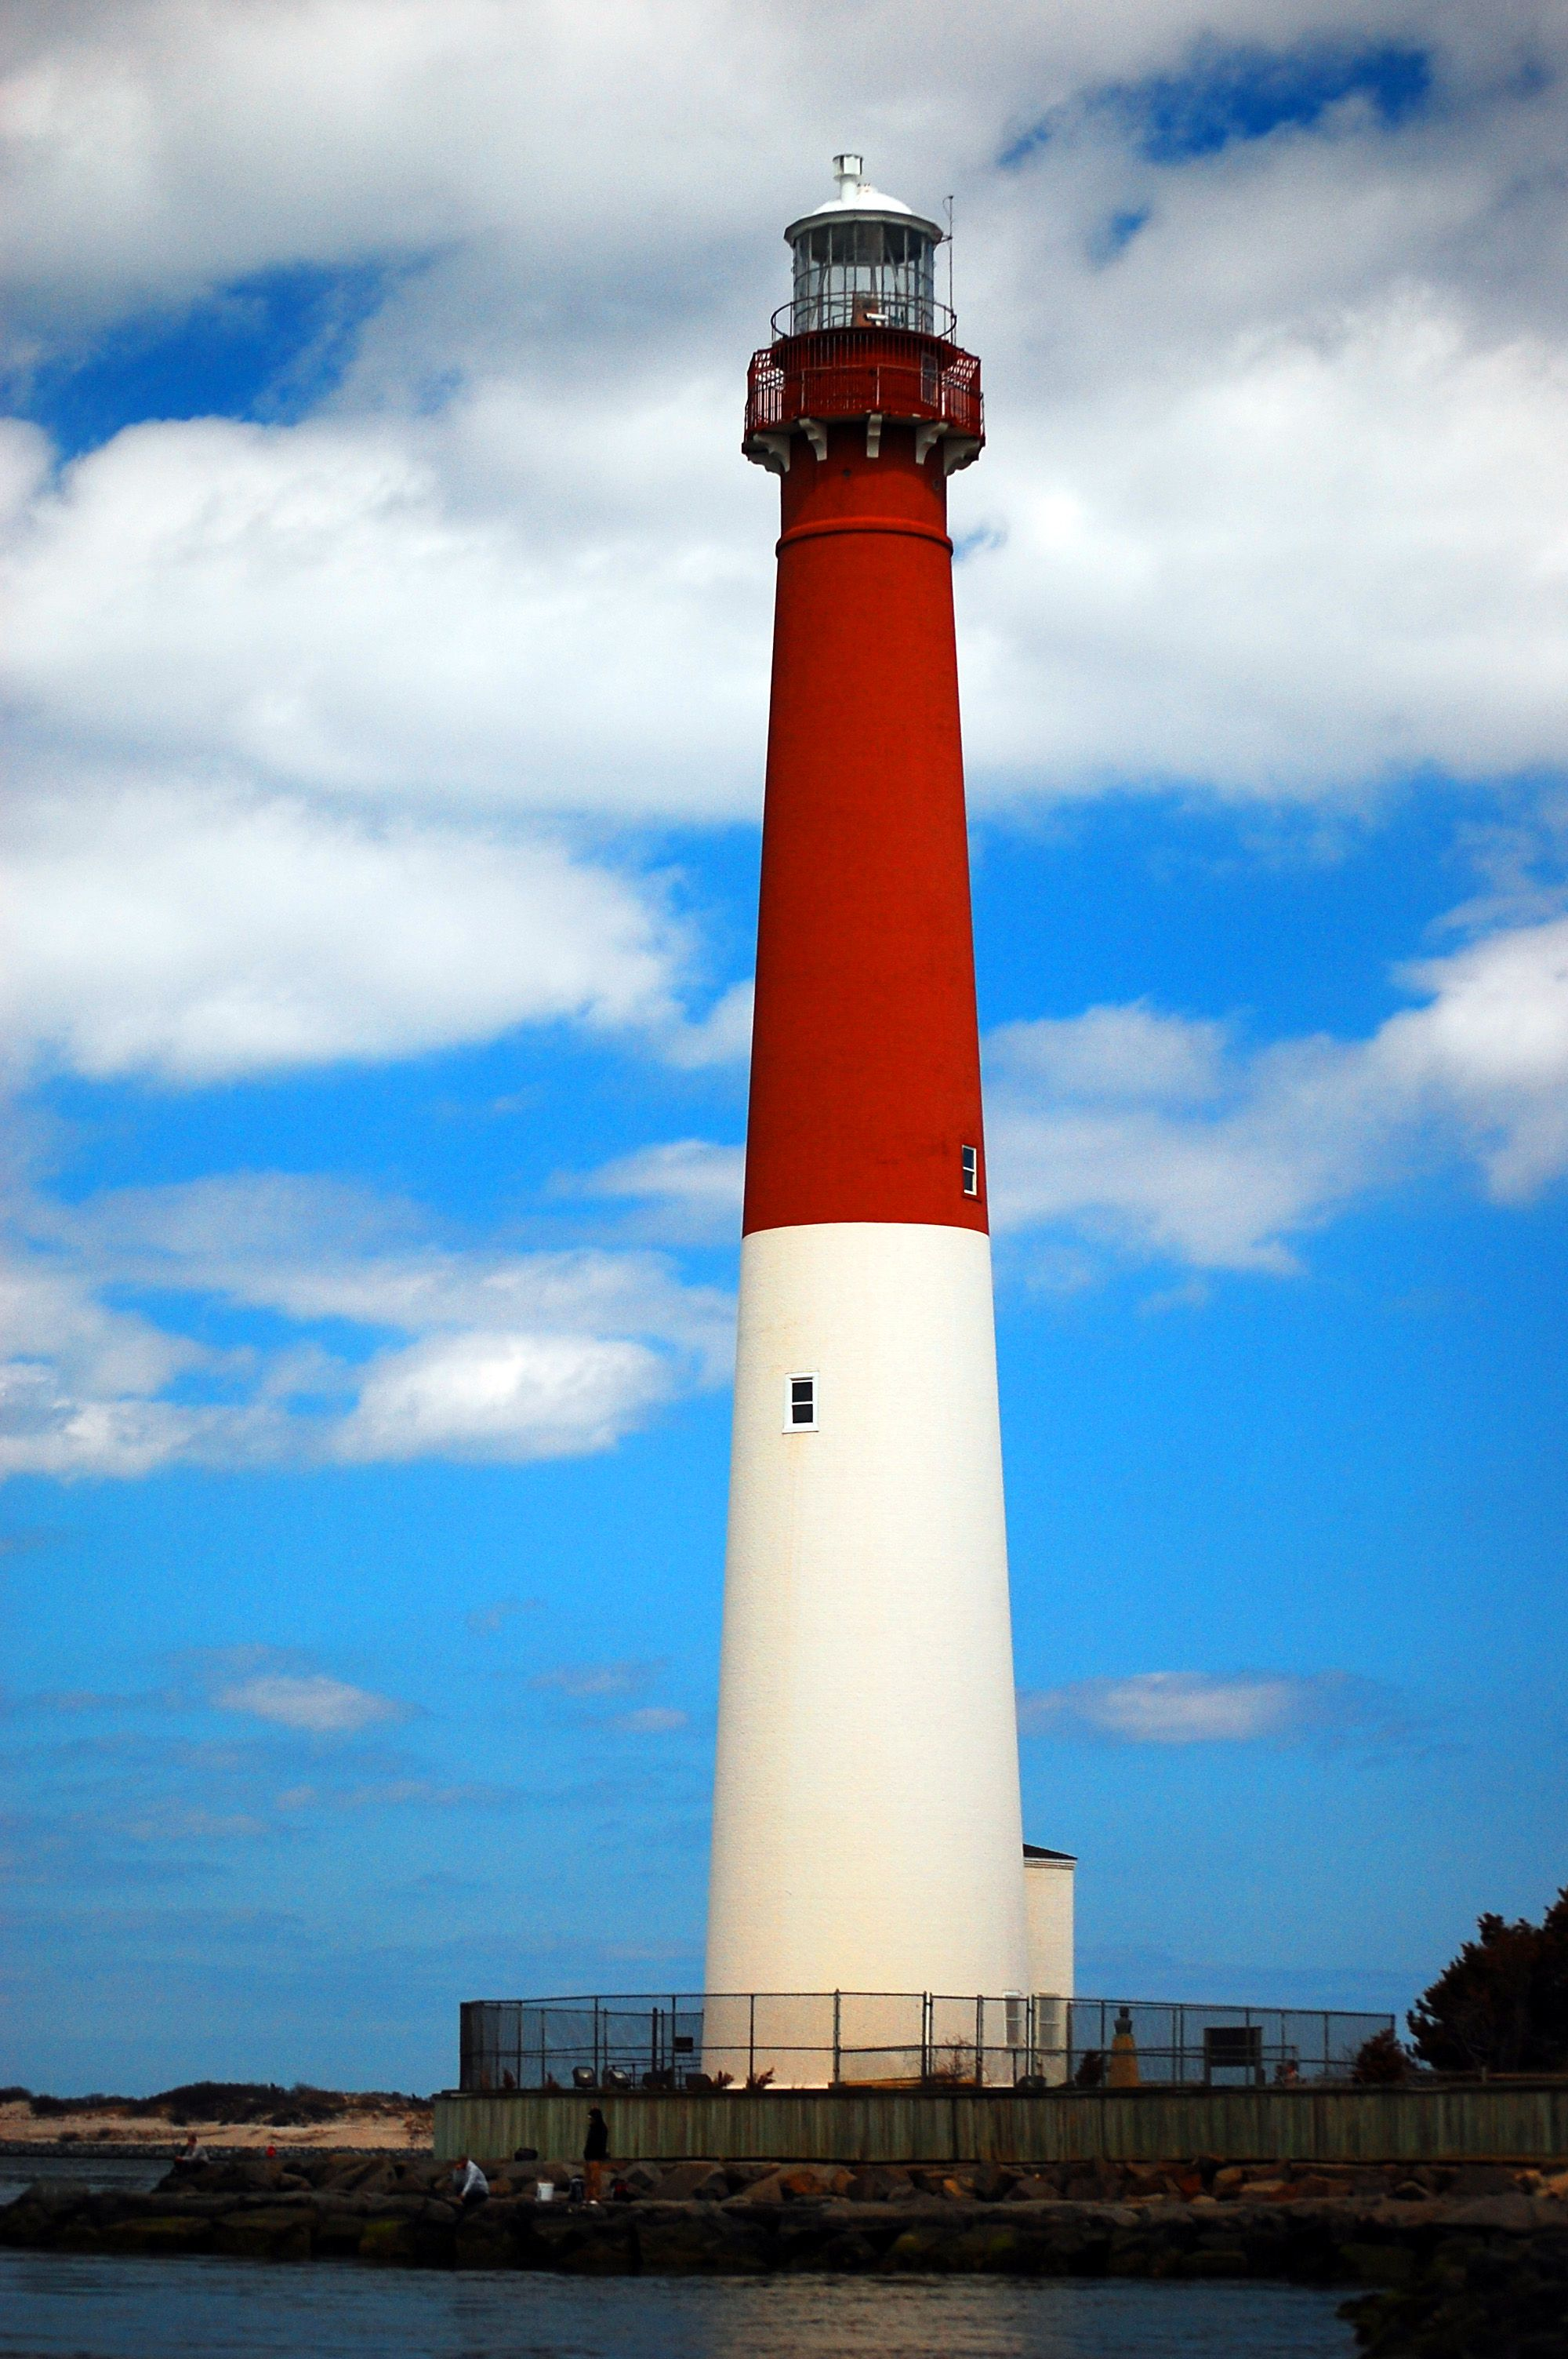 The Barnegat Lighthouse in Barnegat Bay an icon of the Jersey